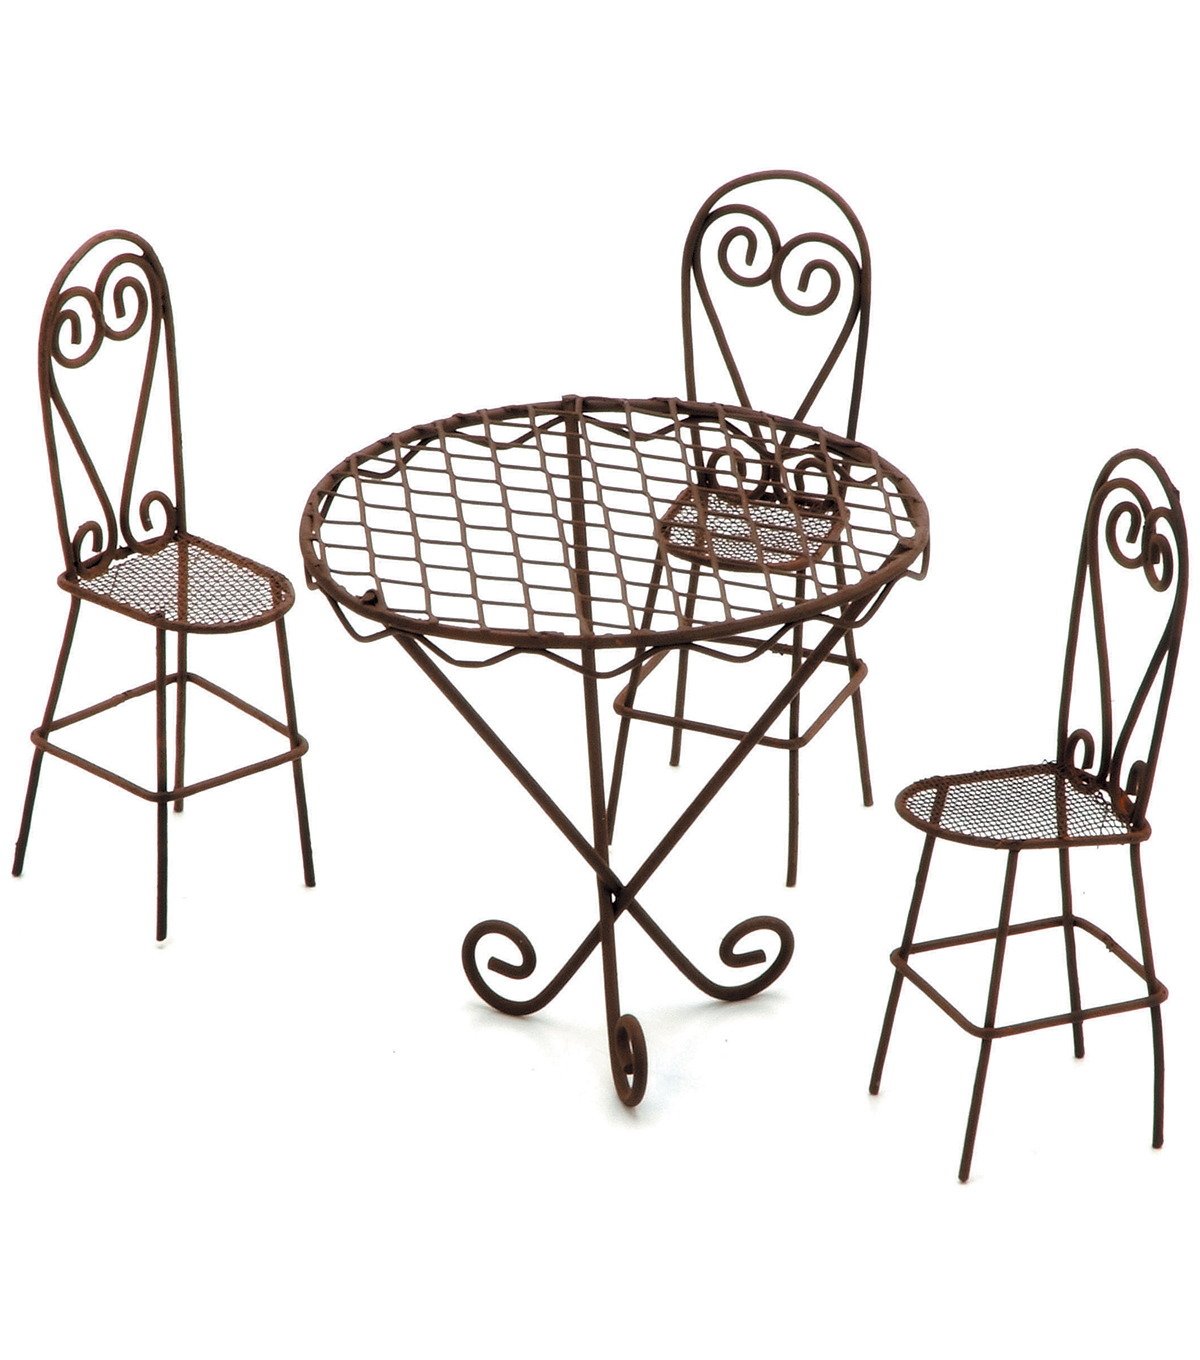 Garden Table And Chairs Set Part - 45: Timeless Miniatures-Wire Garden Table U0026 Chairs Set